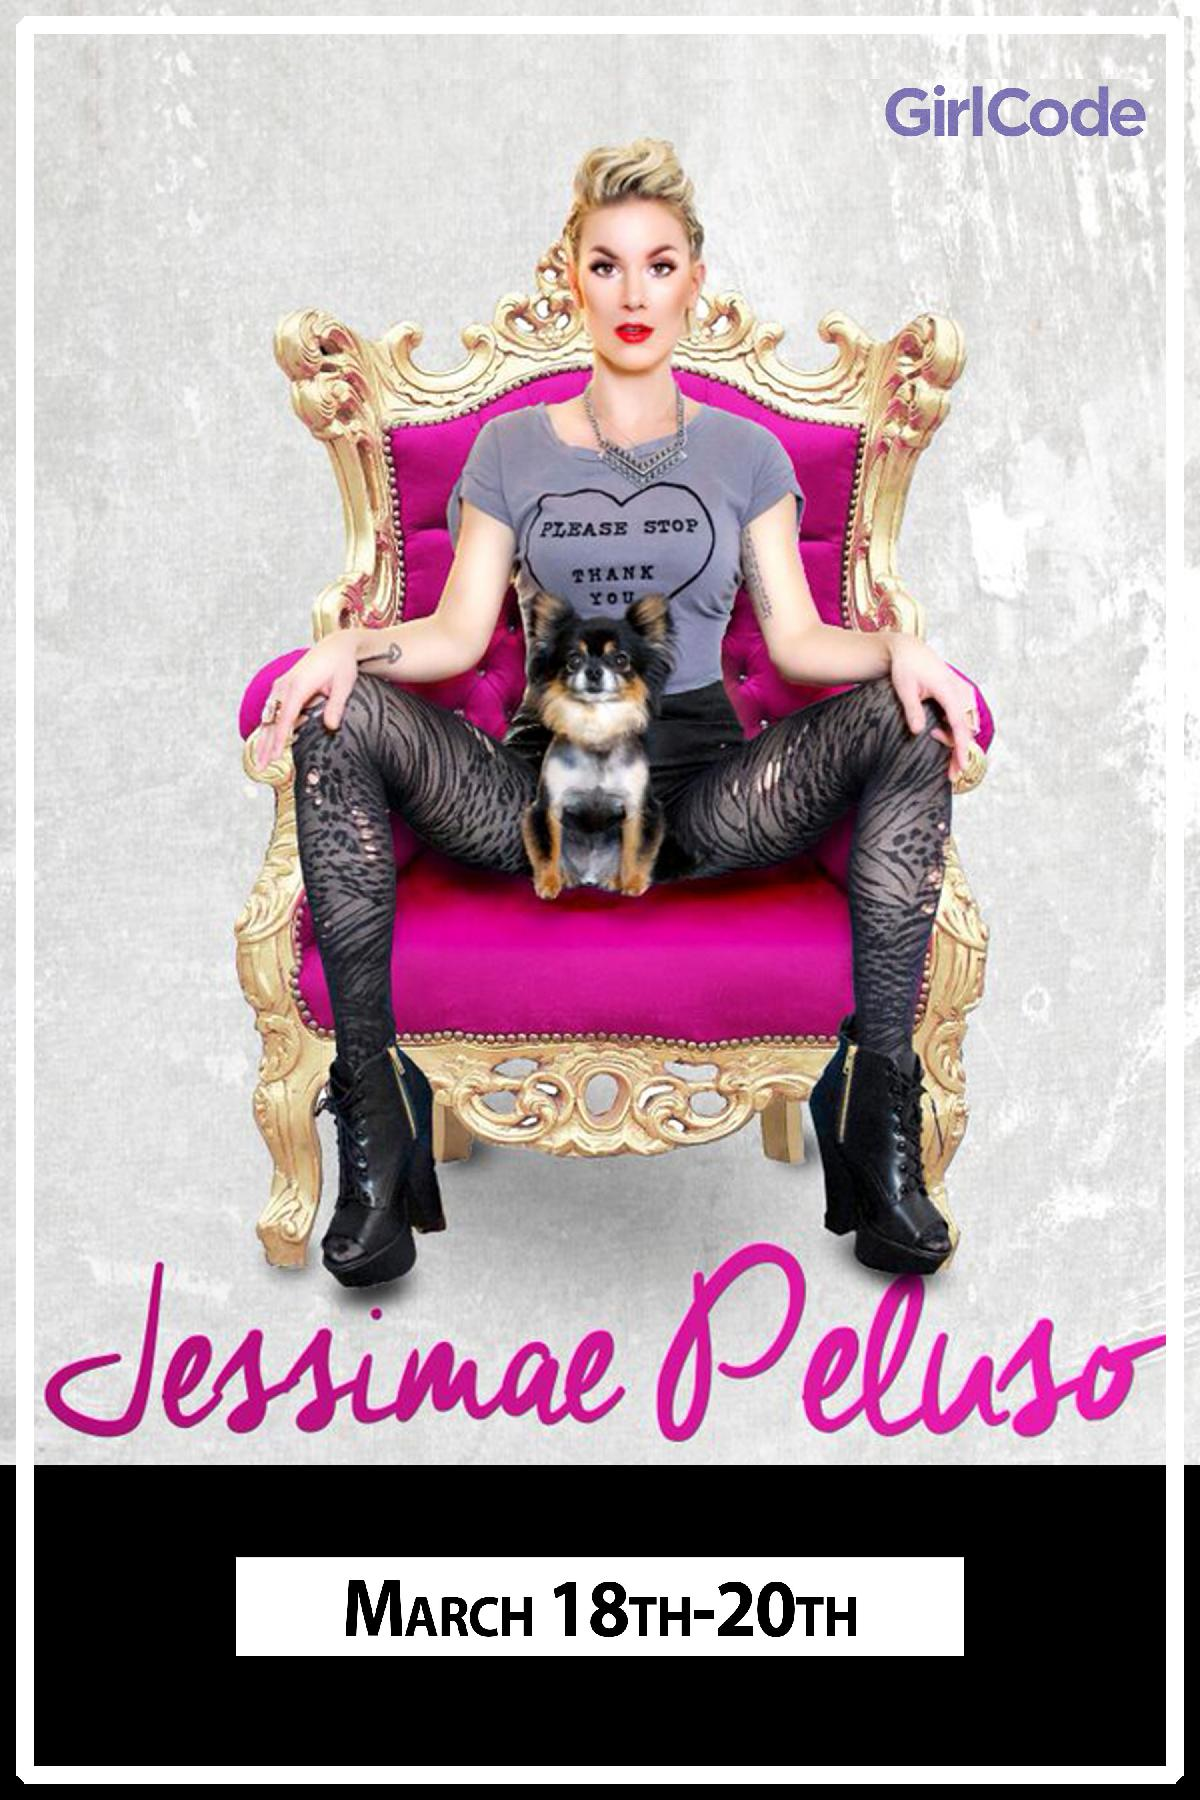 Jessimae Peluso from Girl Code live at Zanies Comedy Club Nashville March 18-20, 2016